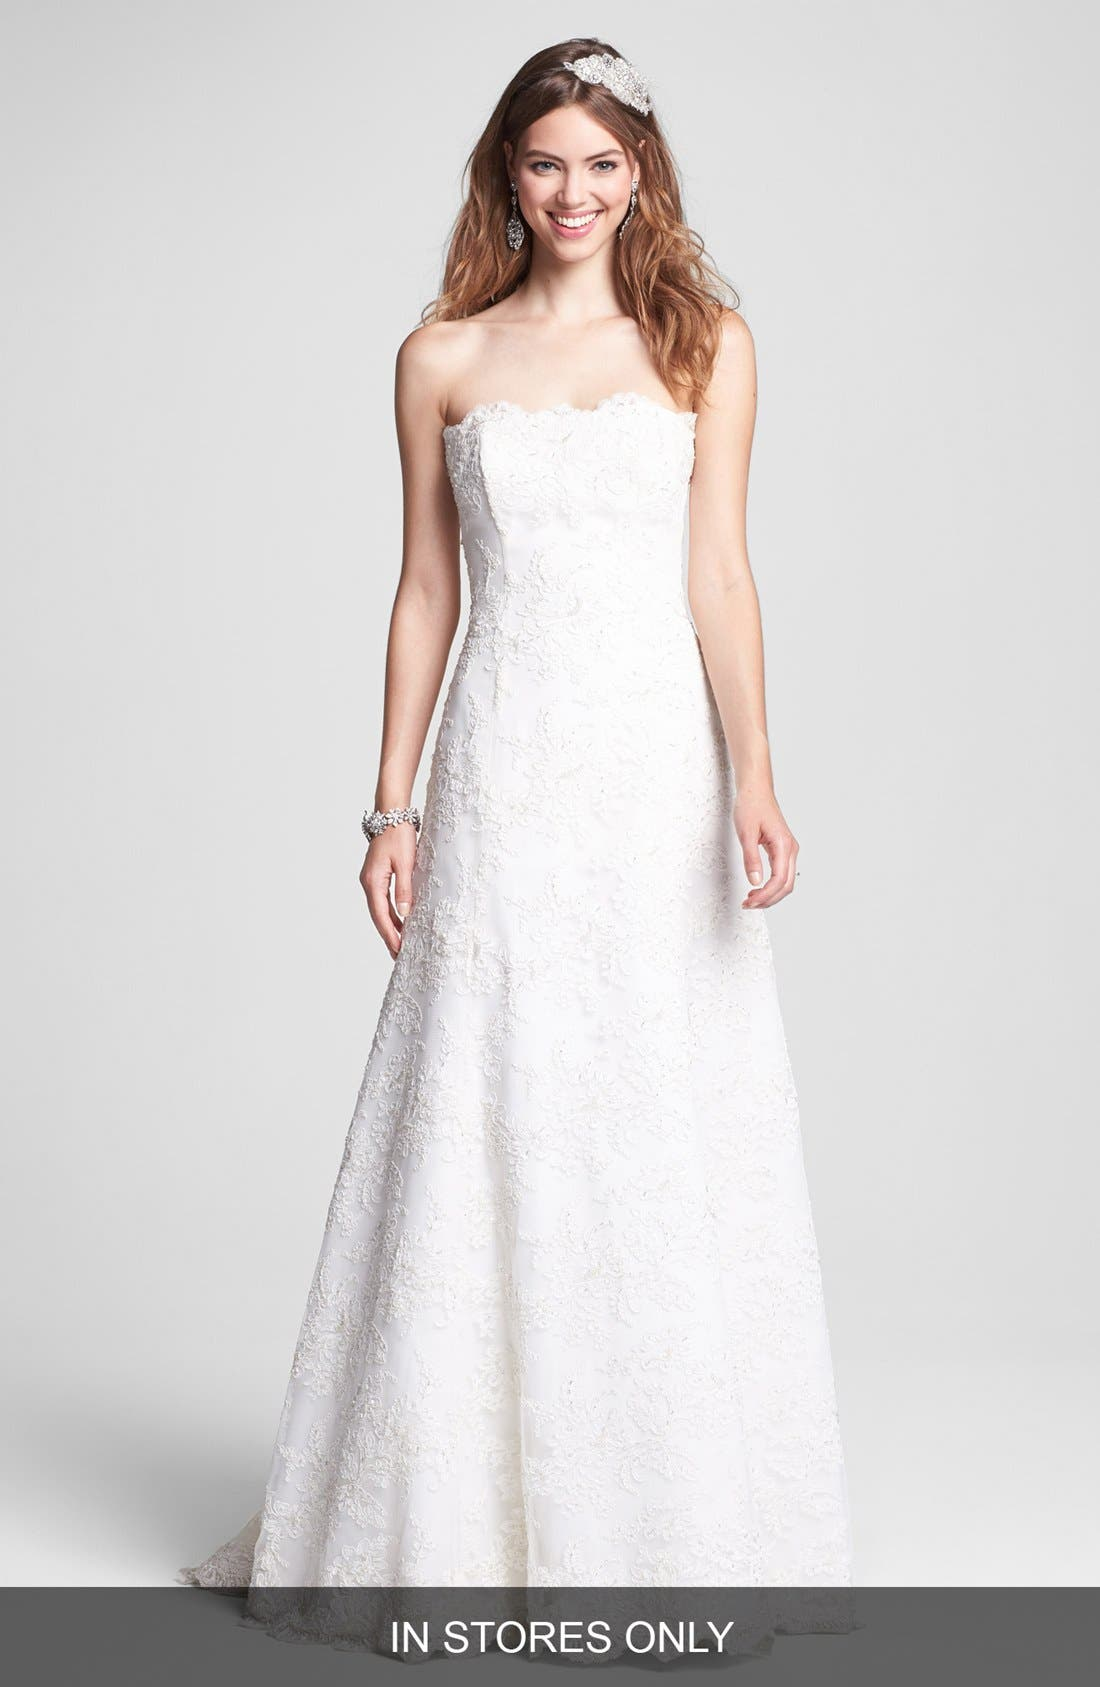 Alternate Image 1 Selected - BLISS Monique Lhuillier Strapless Beaded Lace Wedding Dress